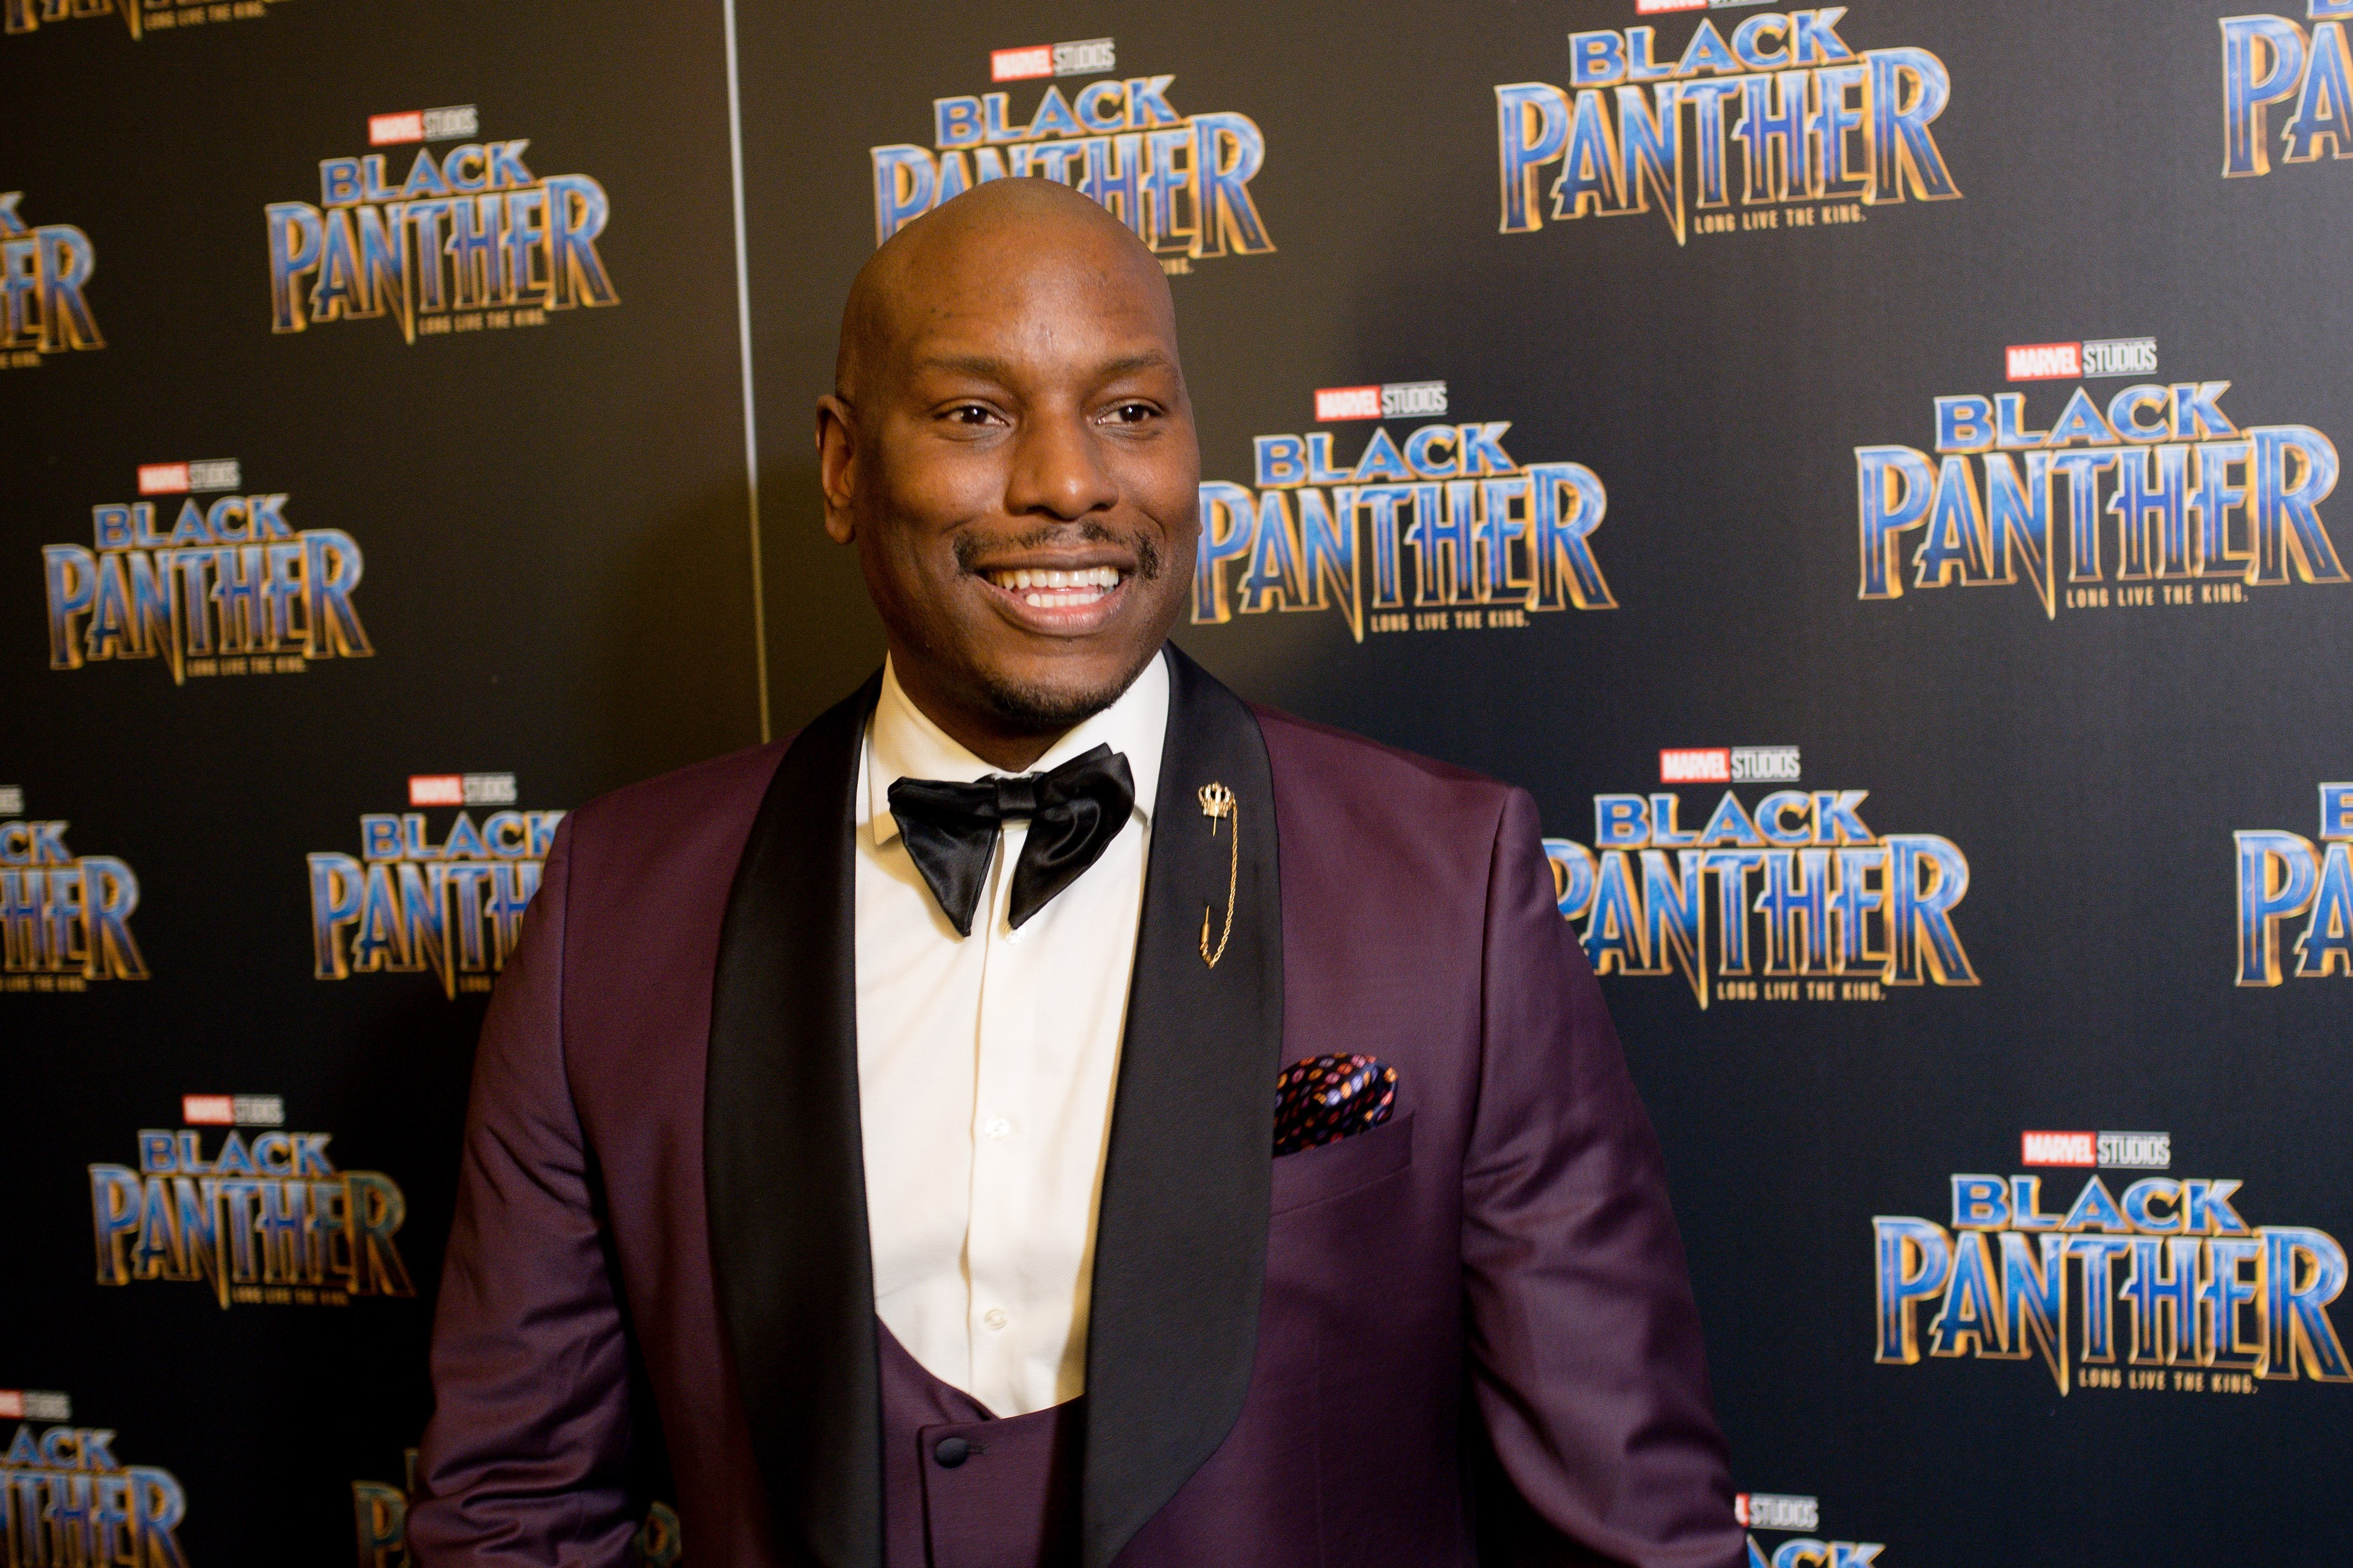 """Tyrese Gibson attends the Marvel Studios """"Black Panther"""" Atlanta movie screening at The Fox Theatre on February 7, 2018 